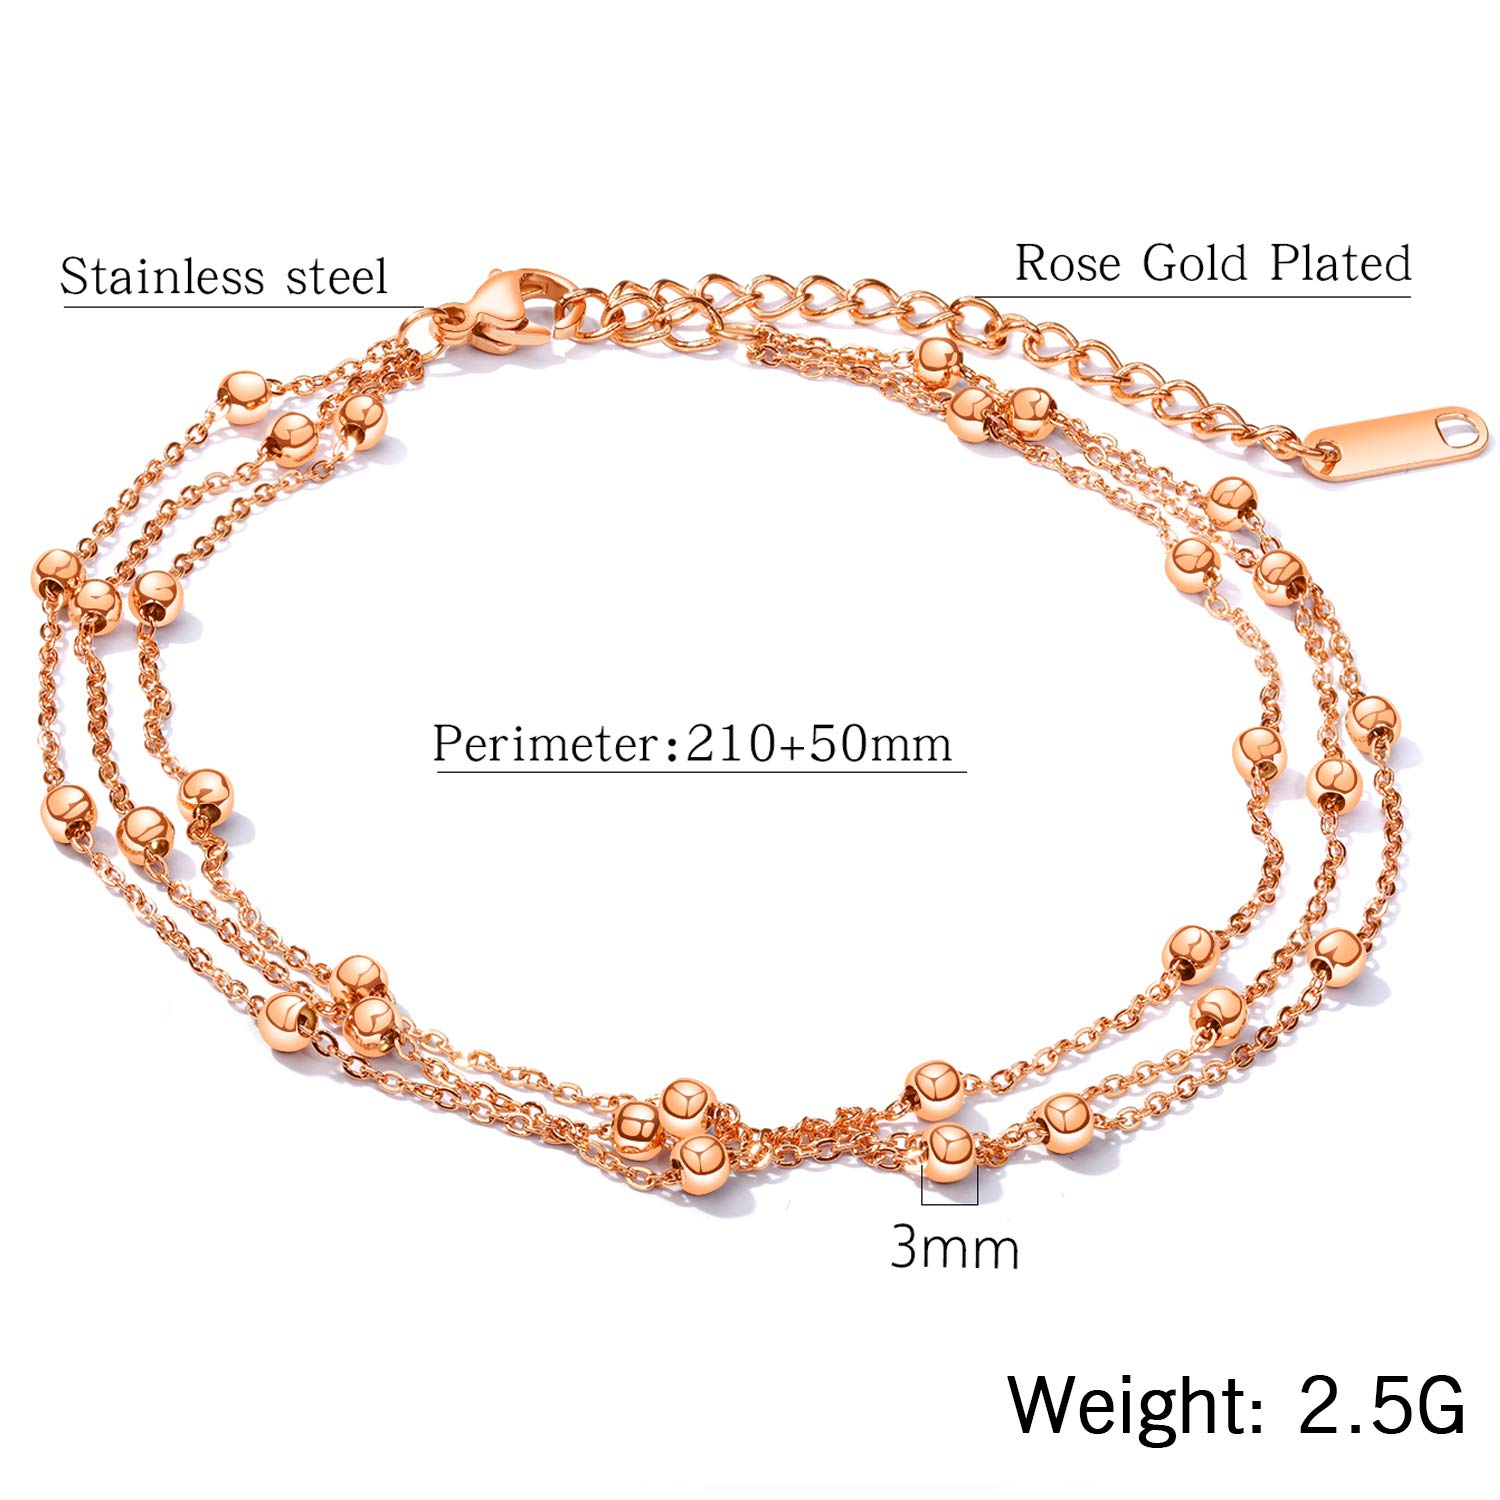 Cupimatch Women Beads Three Layer Chain Wrap Bracelets Adjustable Stainless Steel Multi Strand Anklet Wrist Link Bangle Jewelry